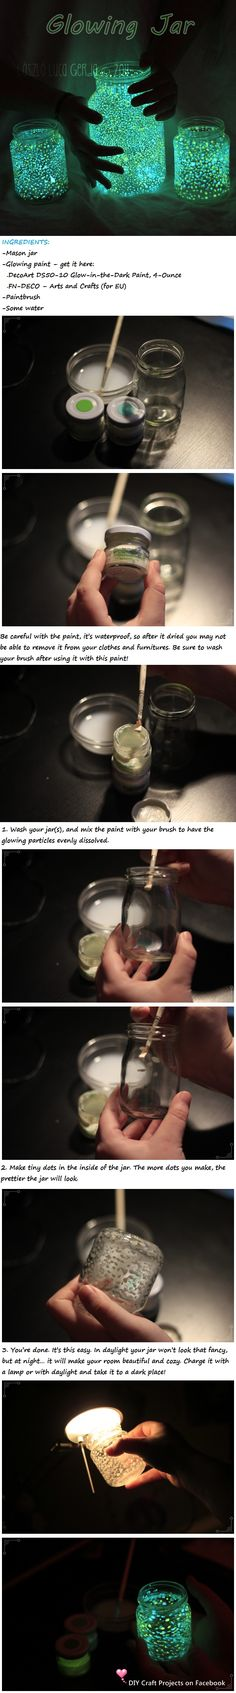 http://diy-projectss.blogspot.com/2013/07/glowing-jar-diy.html